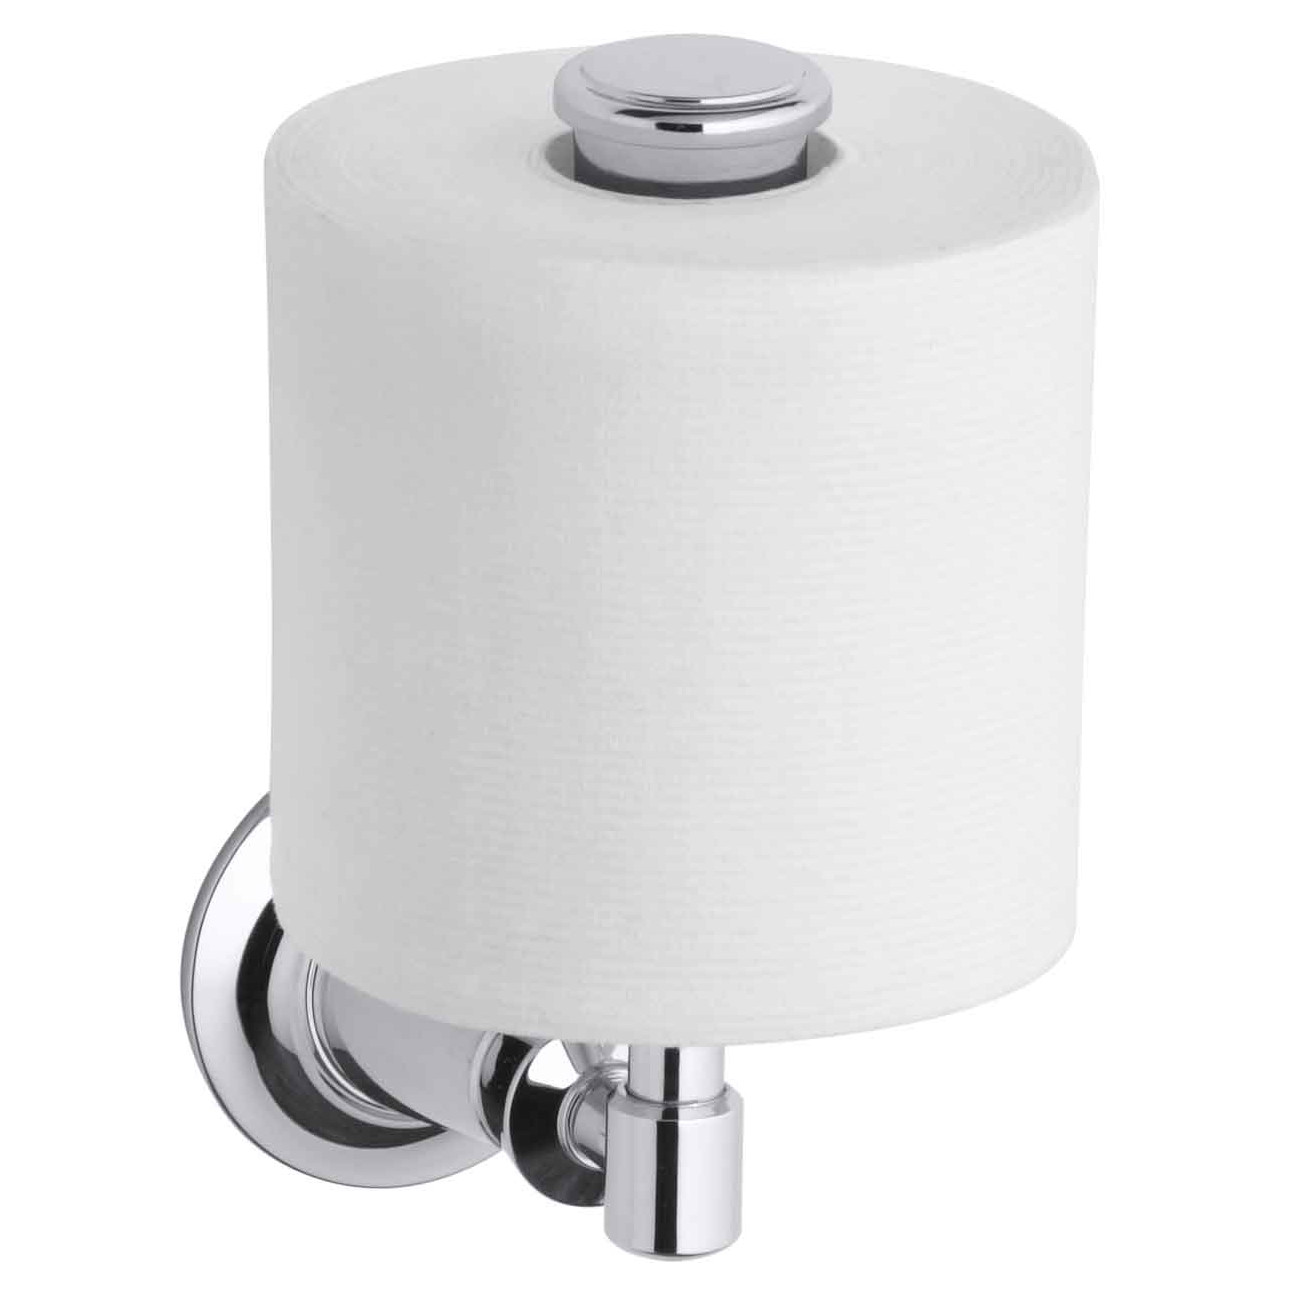 Tp Dispenser Amazing Vertical Toilet Paper Holder Homesfeed